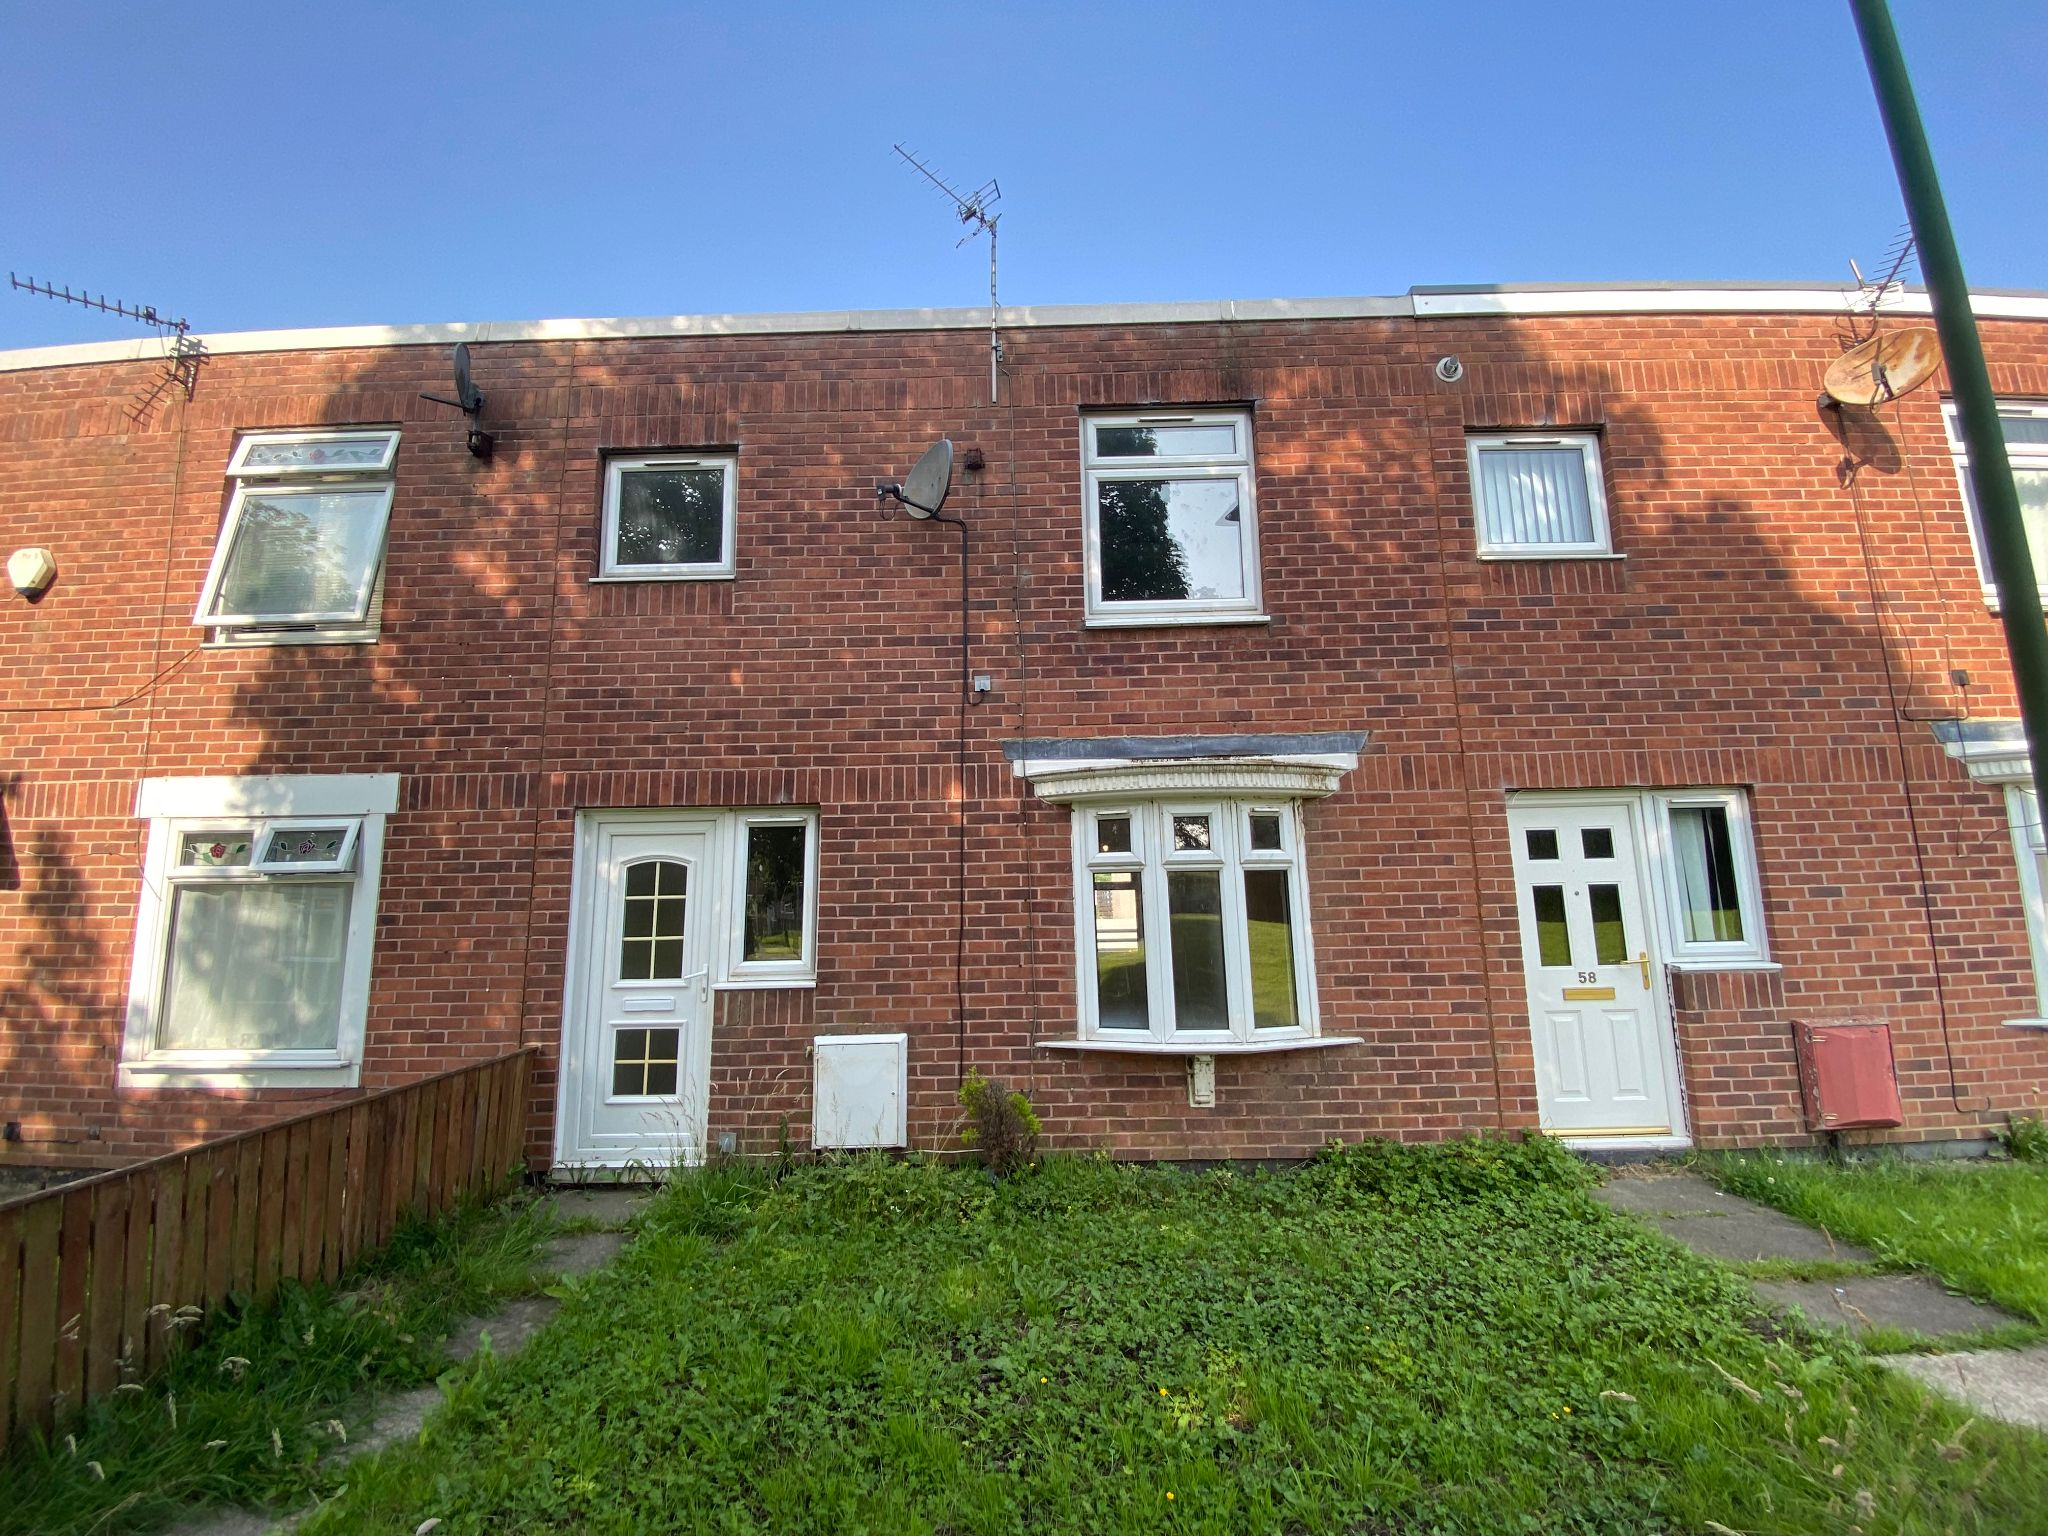 3 bedroom mid terraced house Let in Newton Aycliffe - Photograph 1.